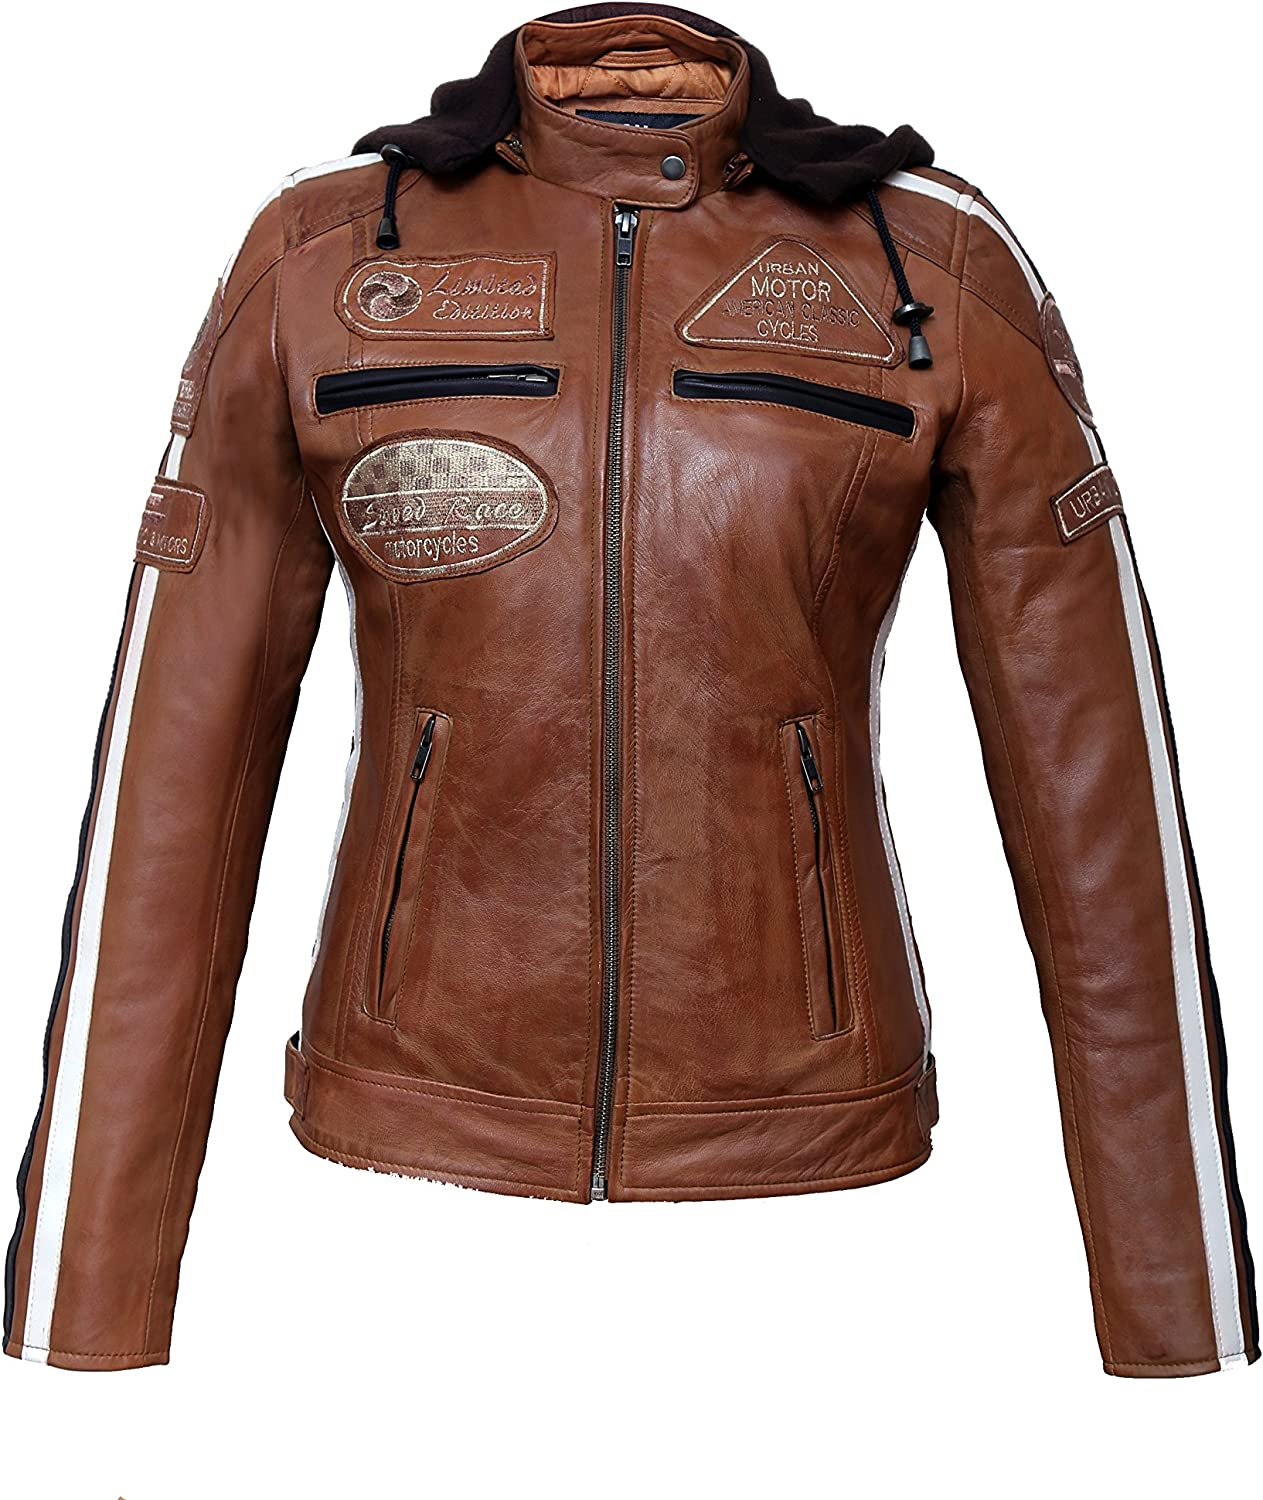 Urban Leather 58 Leren Bikerjack, Chaqueta de Moto para Mujer, Marrón (Tan), 40 / L